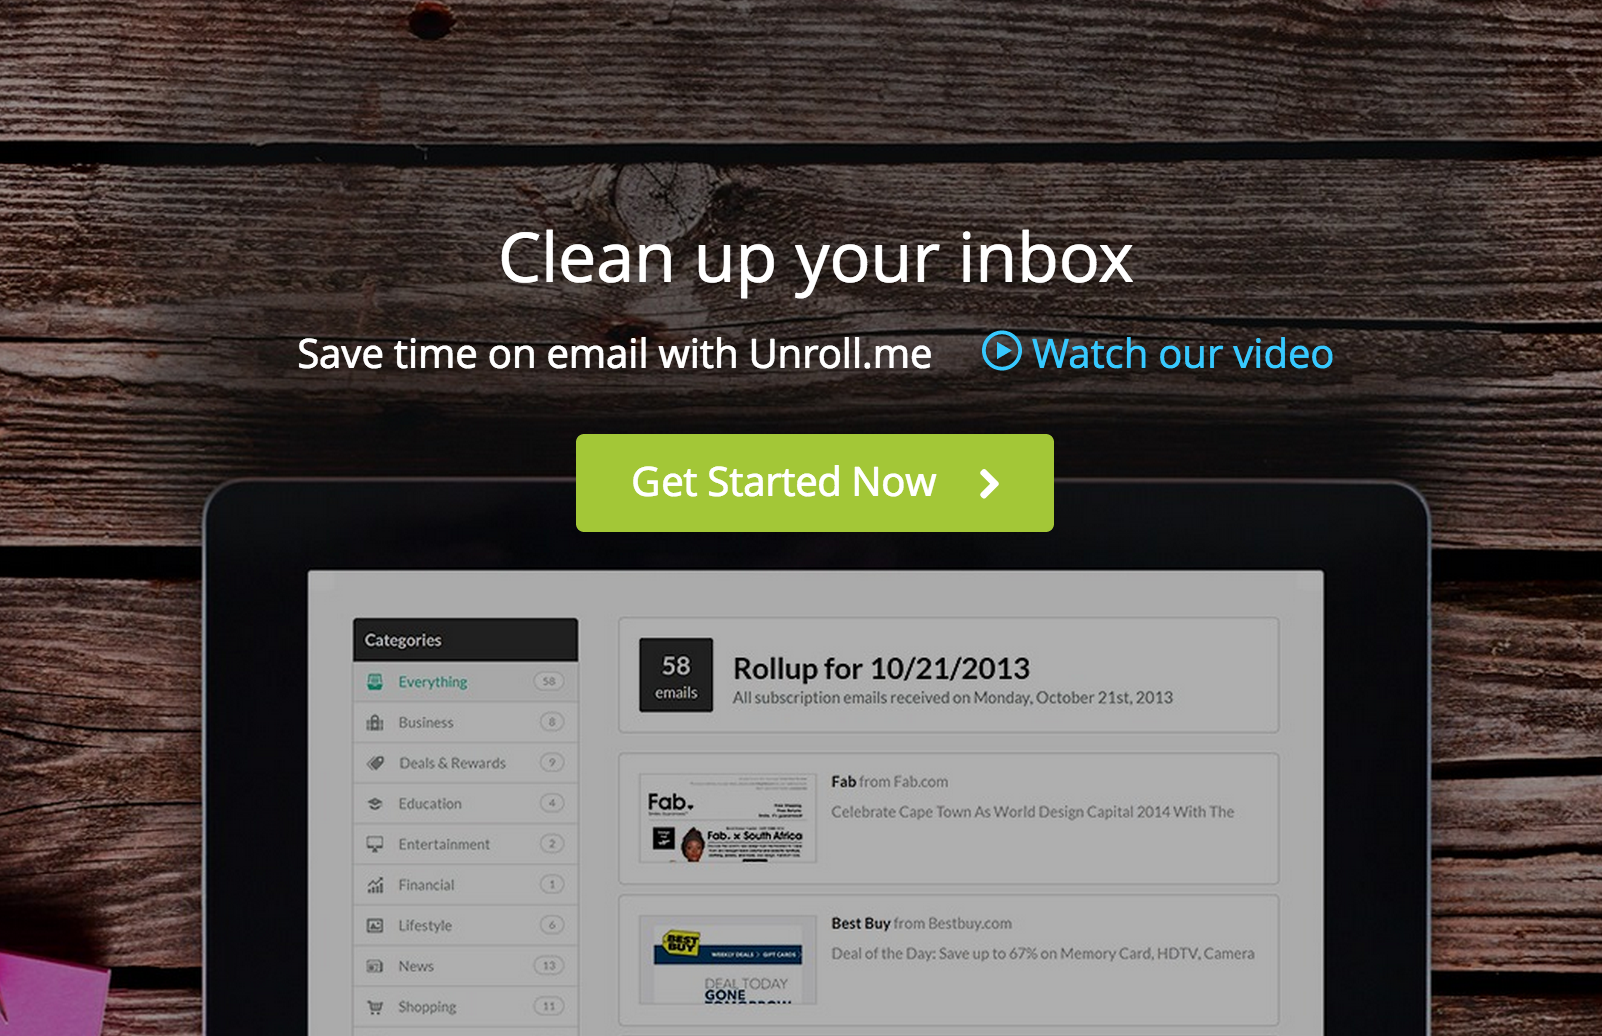 Inbox Out of Control? Unroll.me Might Be Able to Help